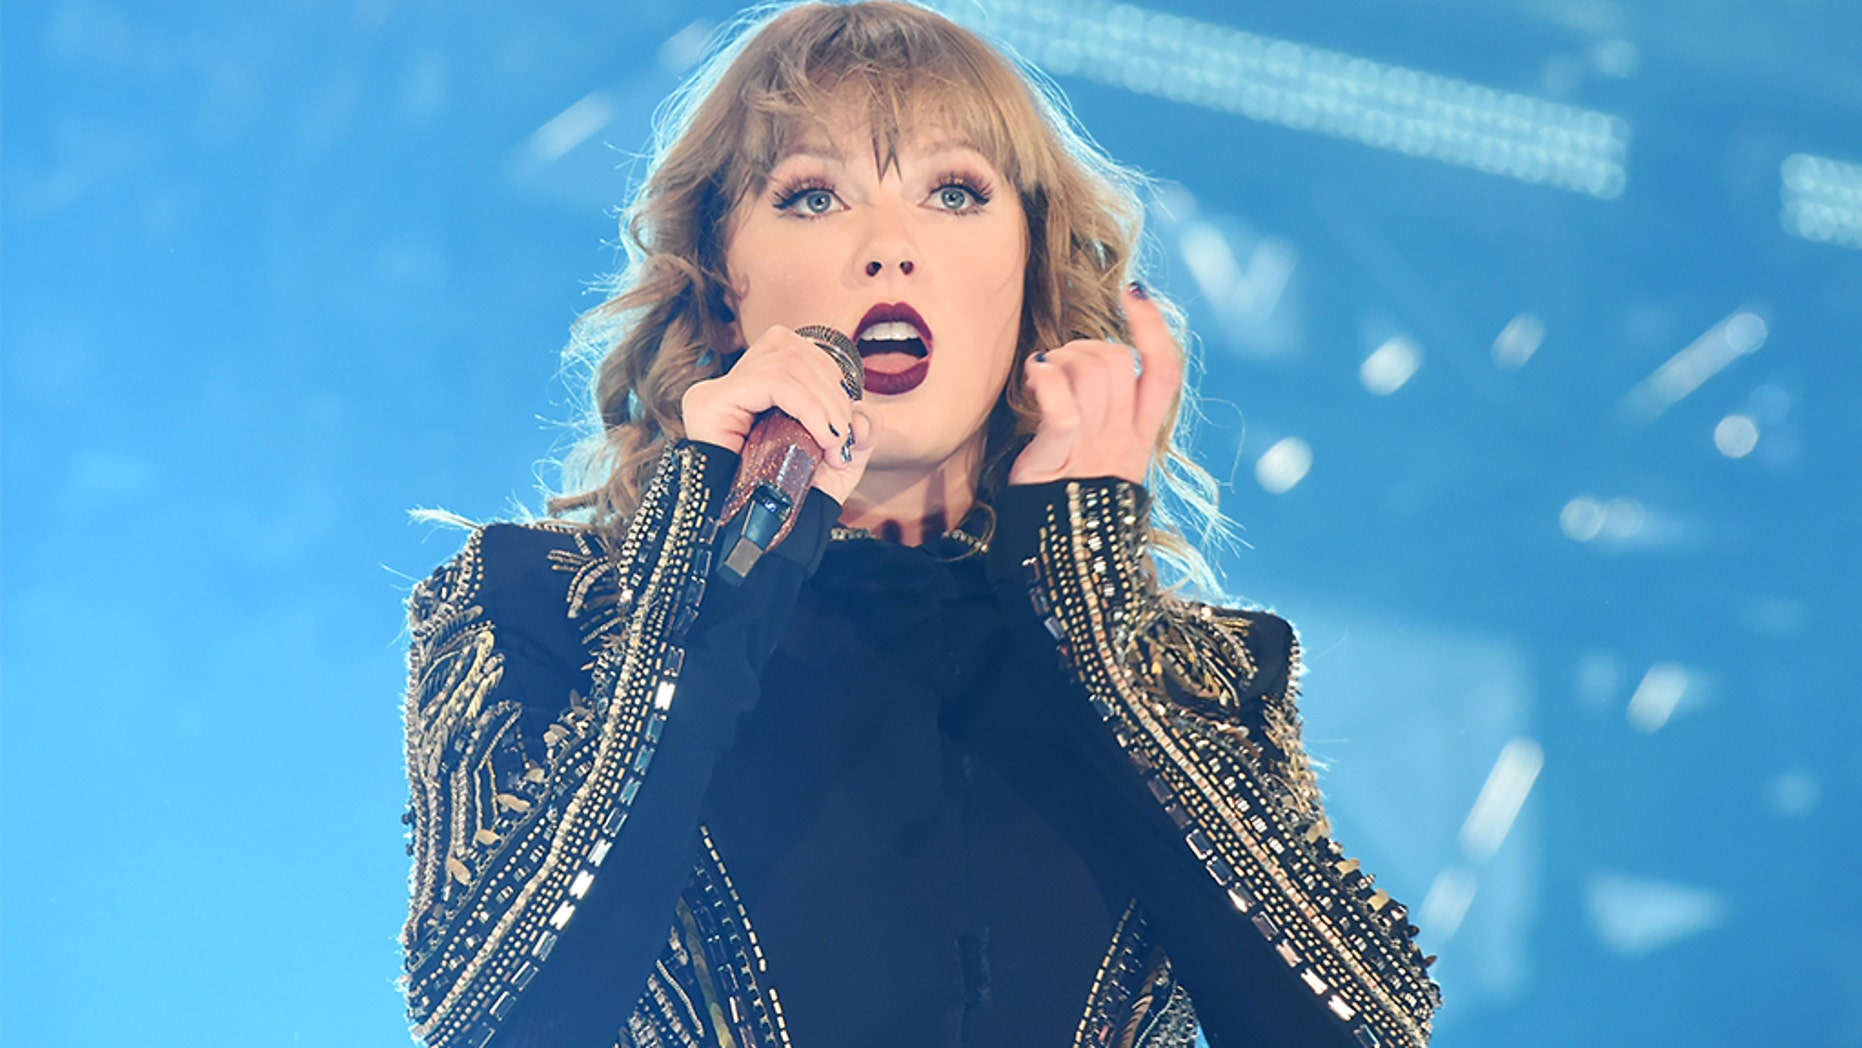 Taylor Swift Used Facial Recognition To Track Known Stalkers At A Show